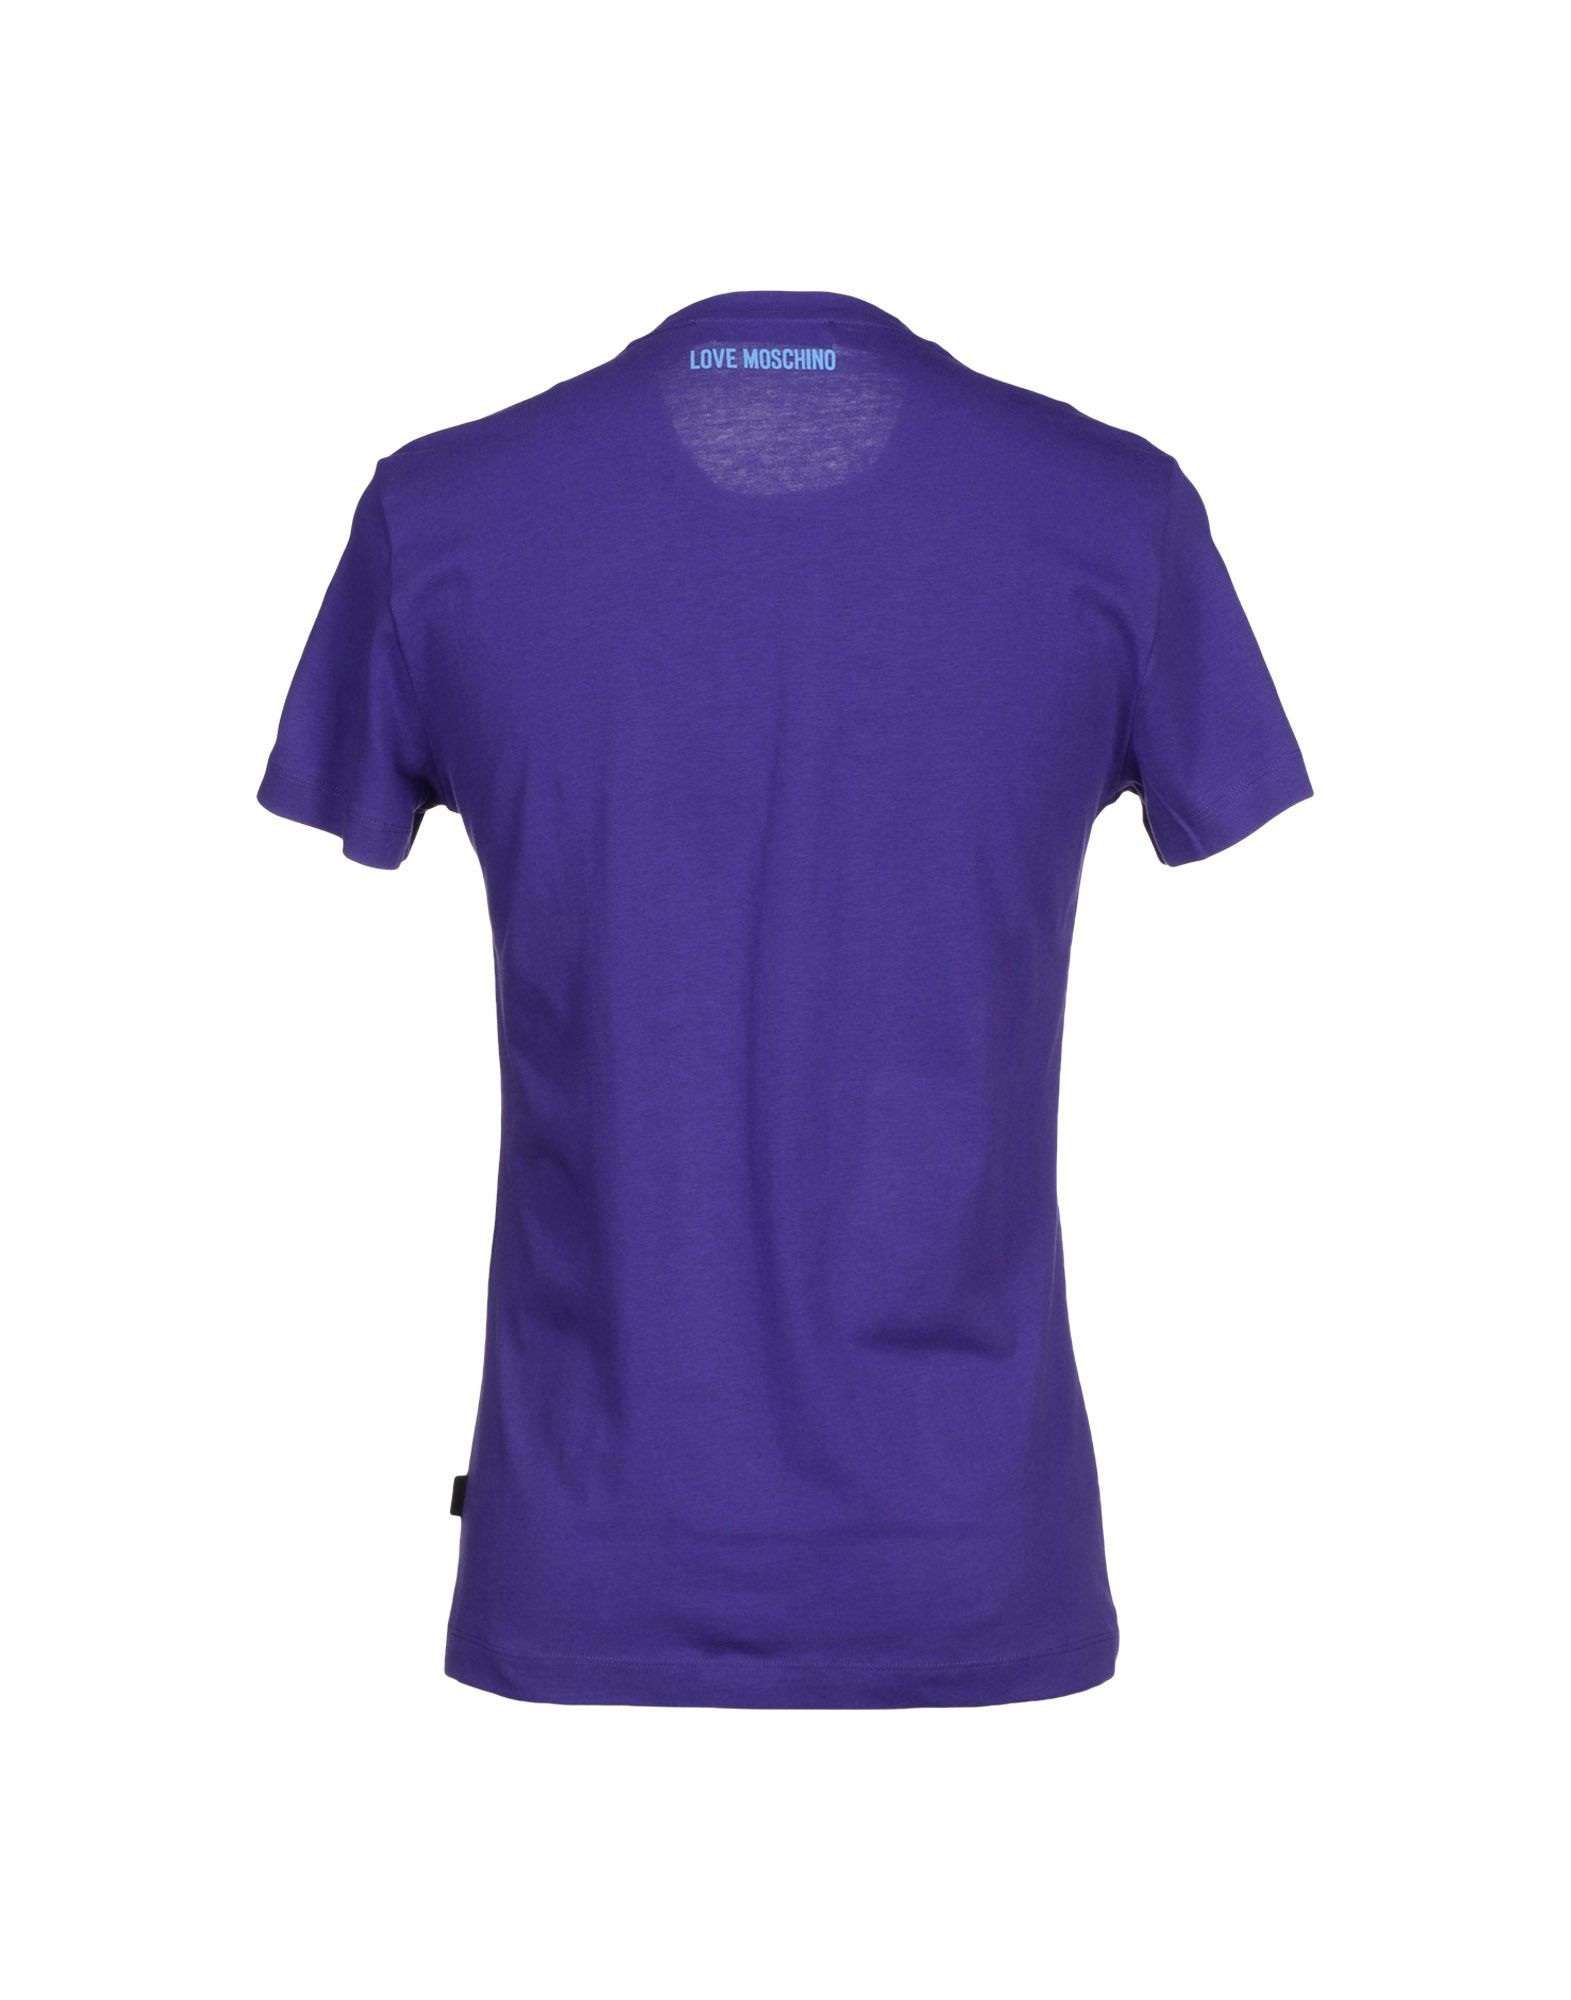 love moschino t shirt in purple for men lyst. Black Bedroom Furniture Sets. Home Design Ideas